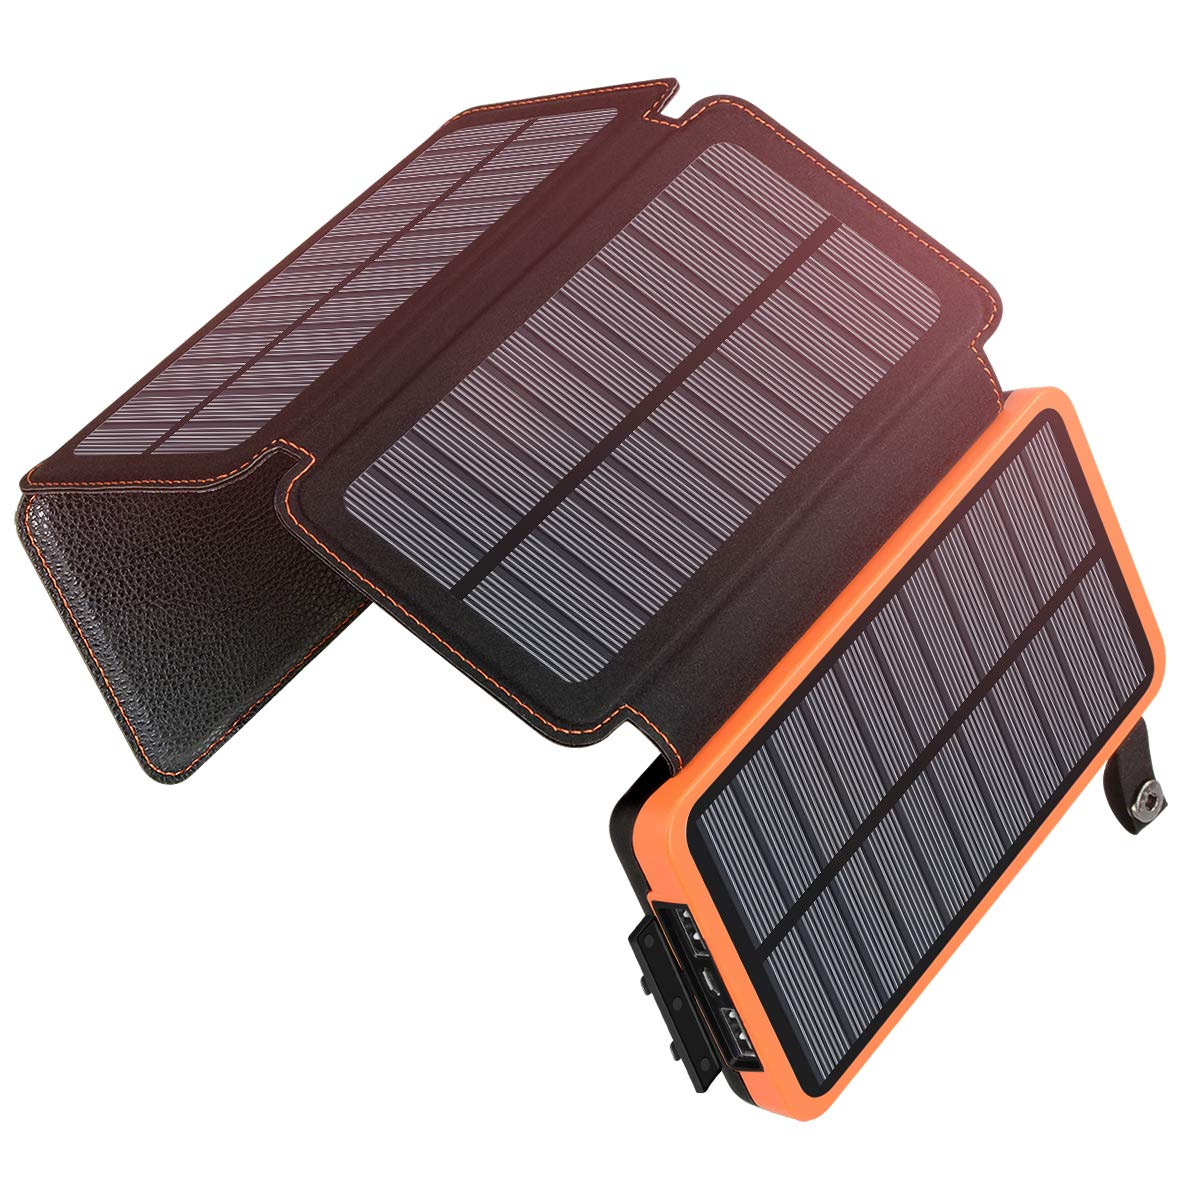 Solar Charger 25000mAh, SOARAISE Waterproof Power Bank with 4 Solar Panels Portable Battery Pack Compatible with Most Phones, Tablets and More by SOARAISE